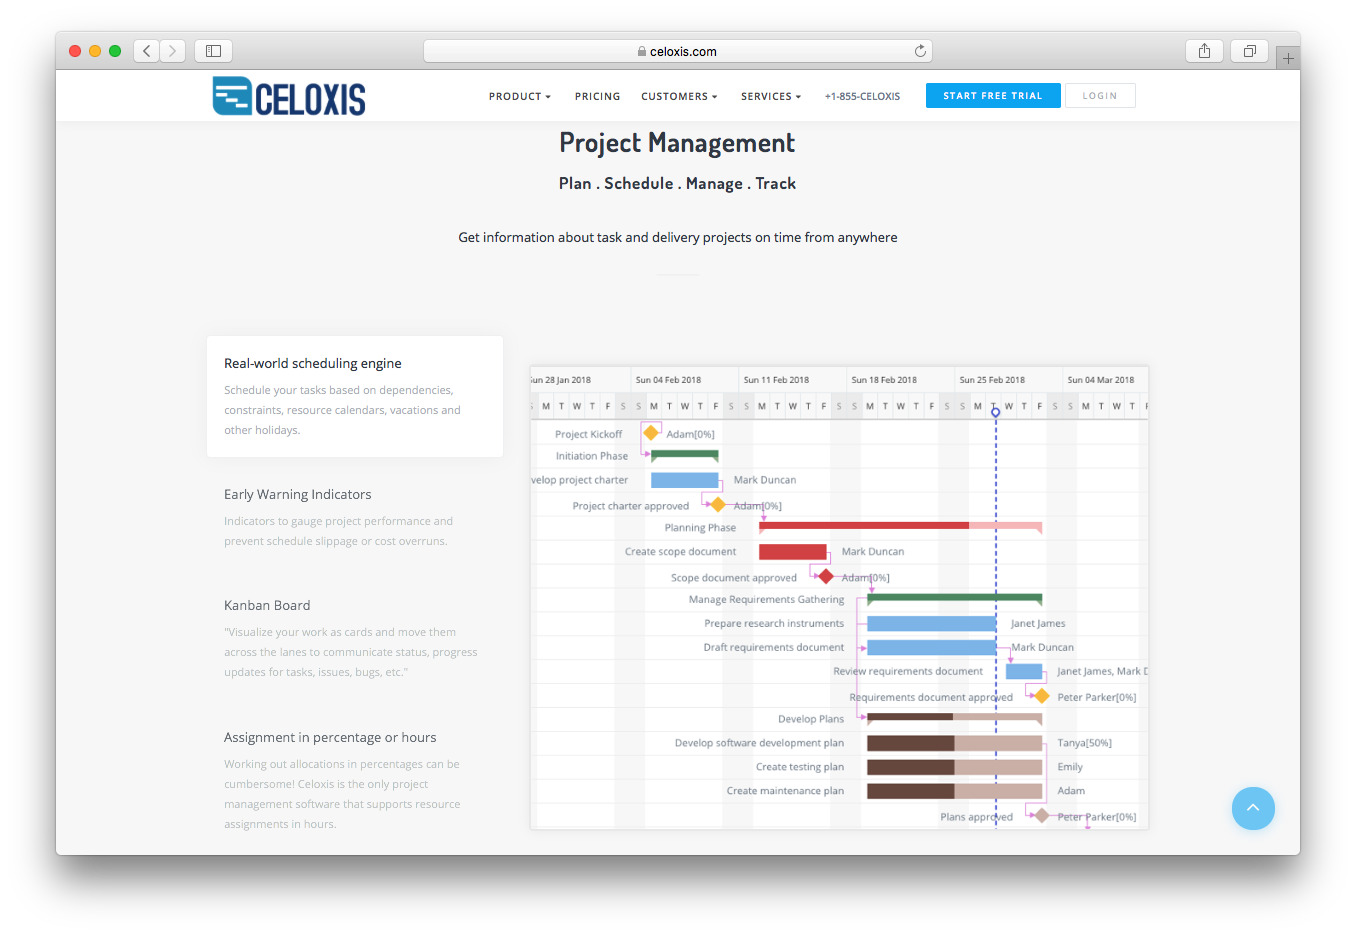 Celoxis project management plan schedule manage track